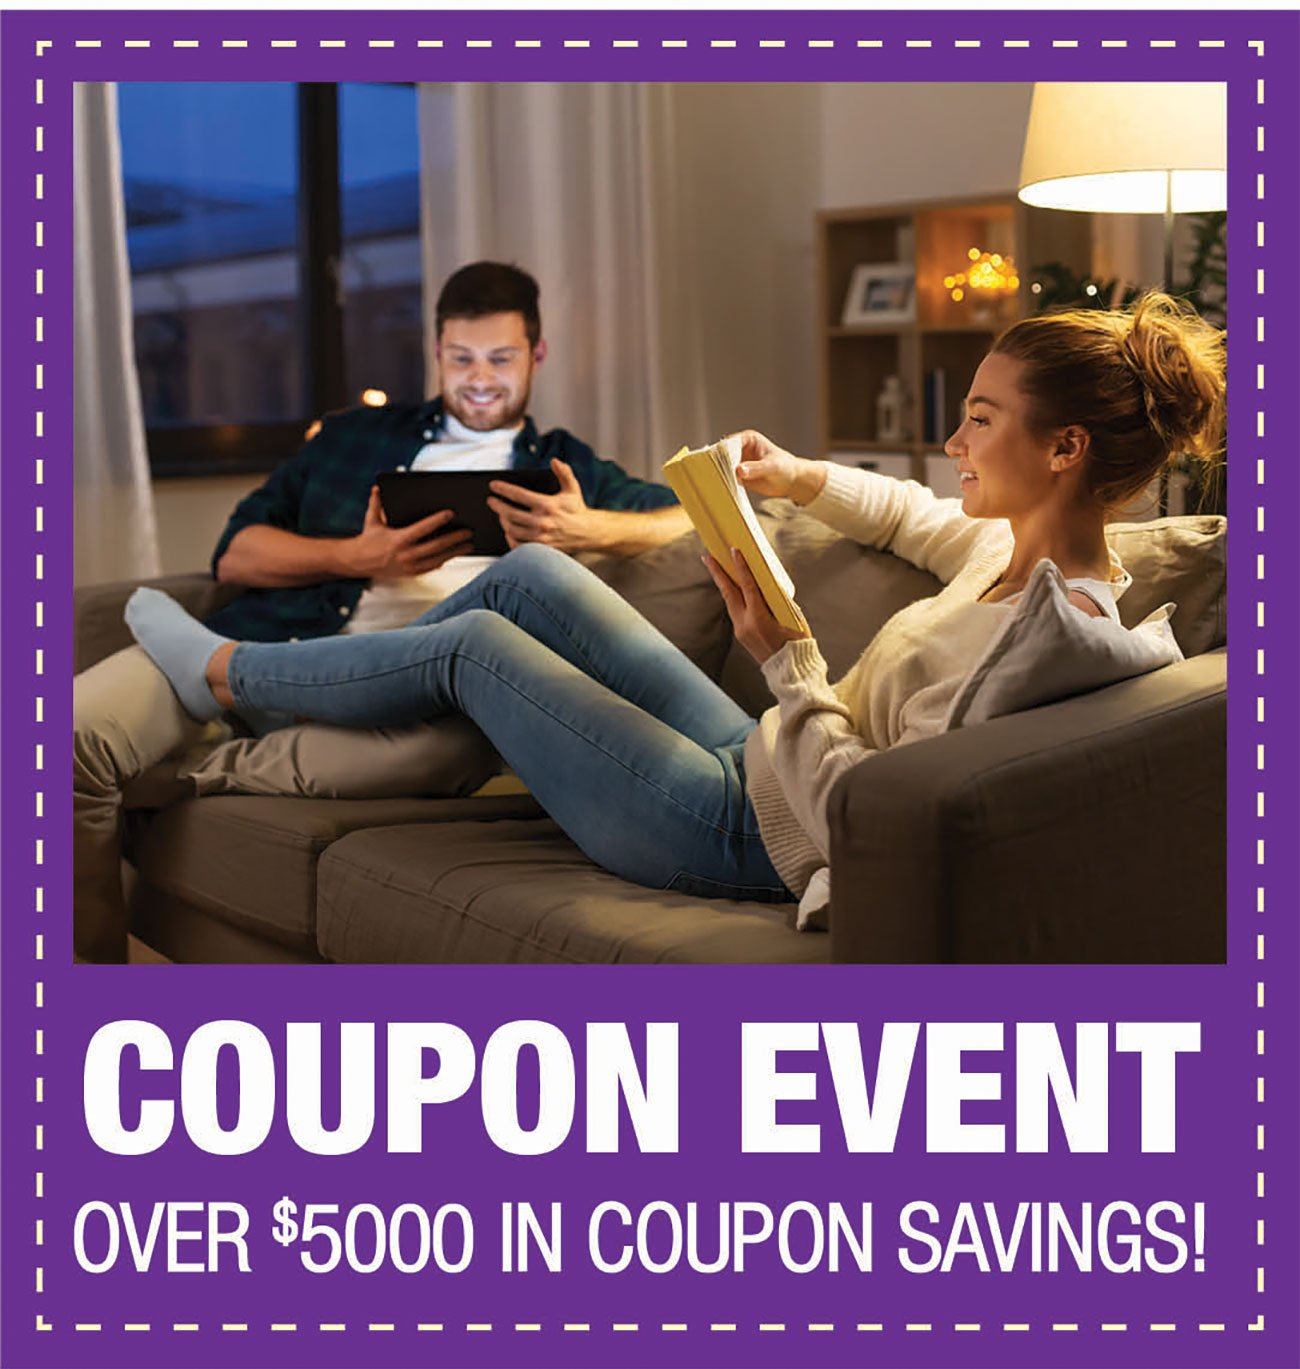 Coupon-Event-Over-5000-In-Savings-Header